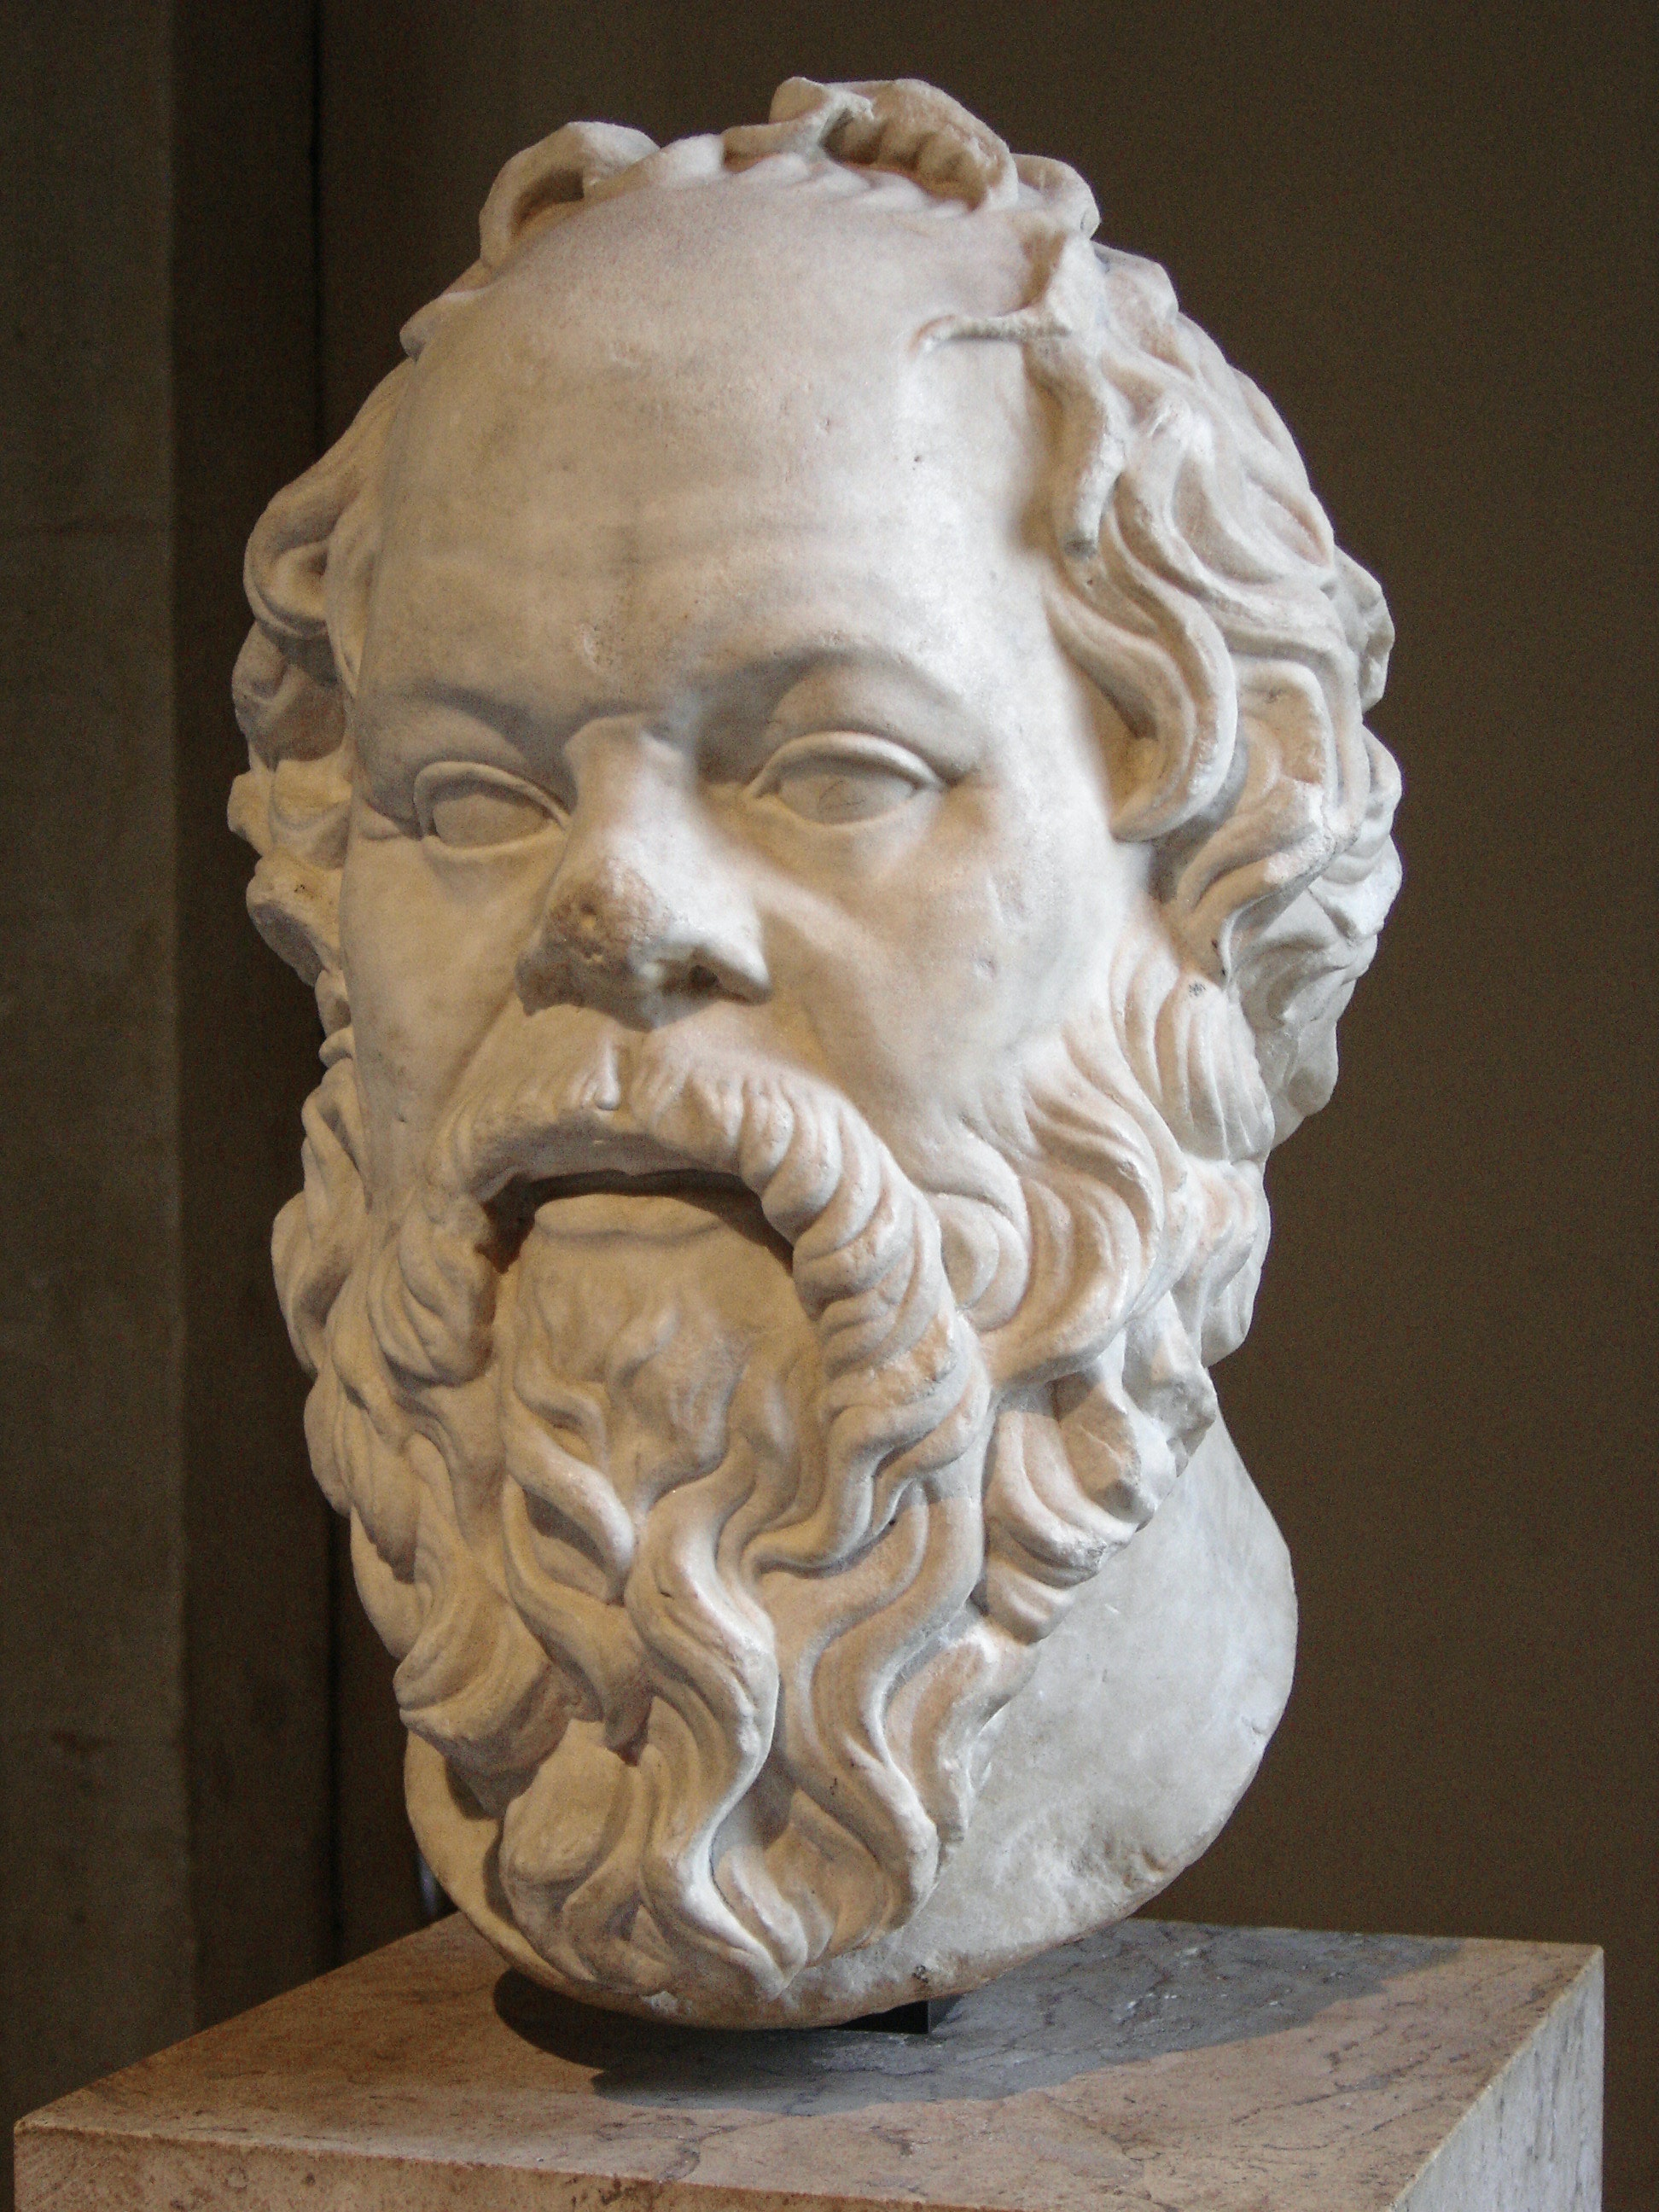 Socrates. Credit: Sting, Wikimedia Commons, CC BY-SA